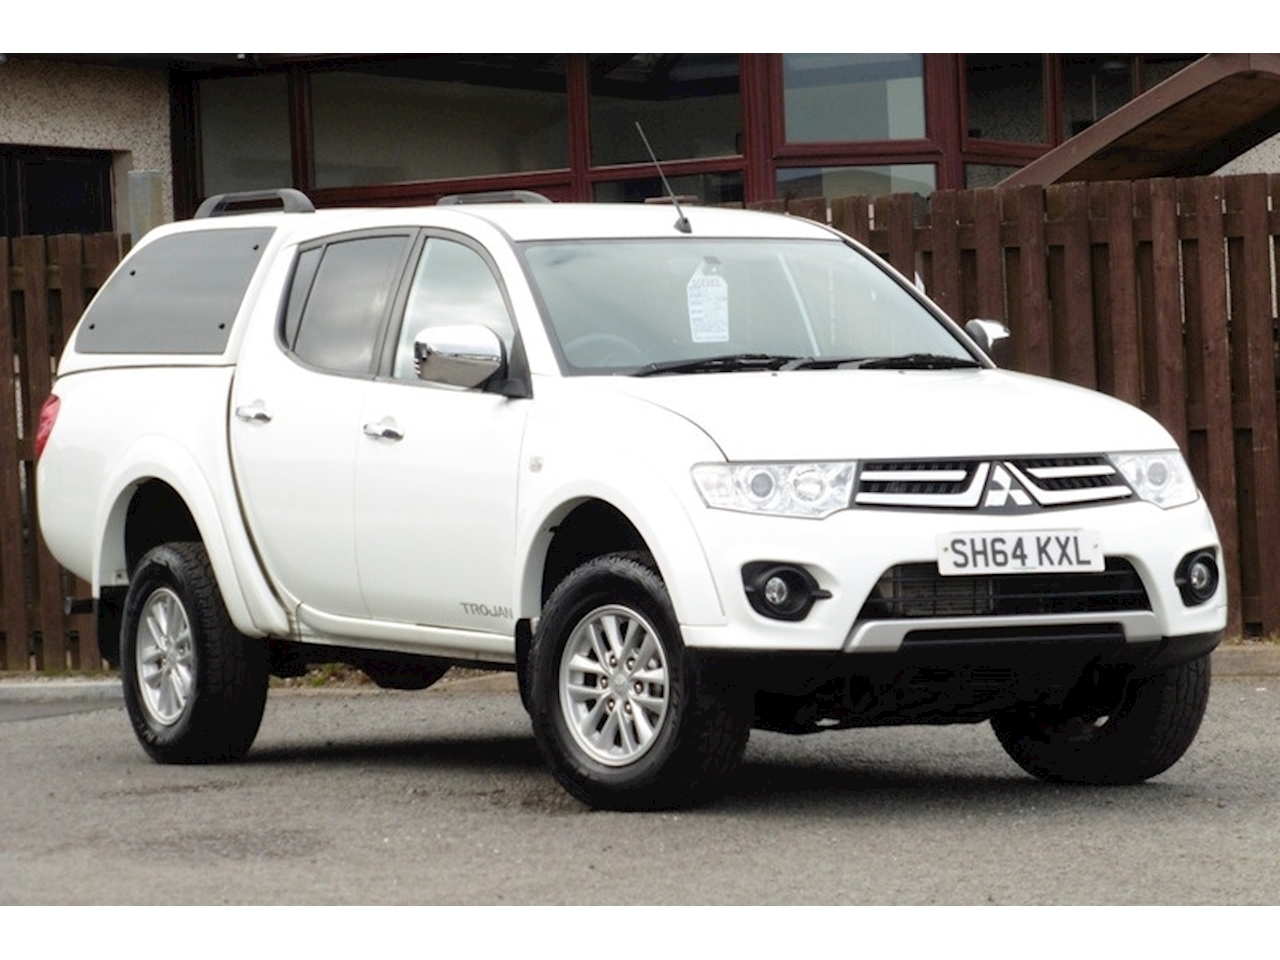 Mitsubishi L200 Di-D 4X4 Trojan Dcb Pick-Up 2.5 Manual Diesel